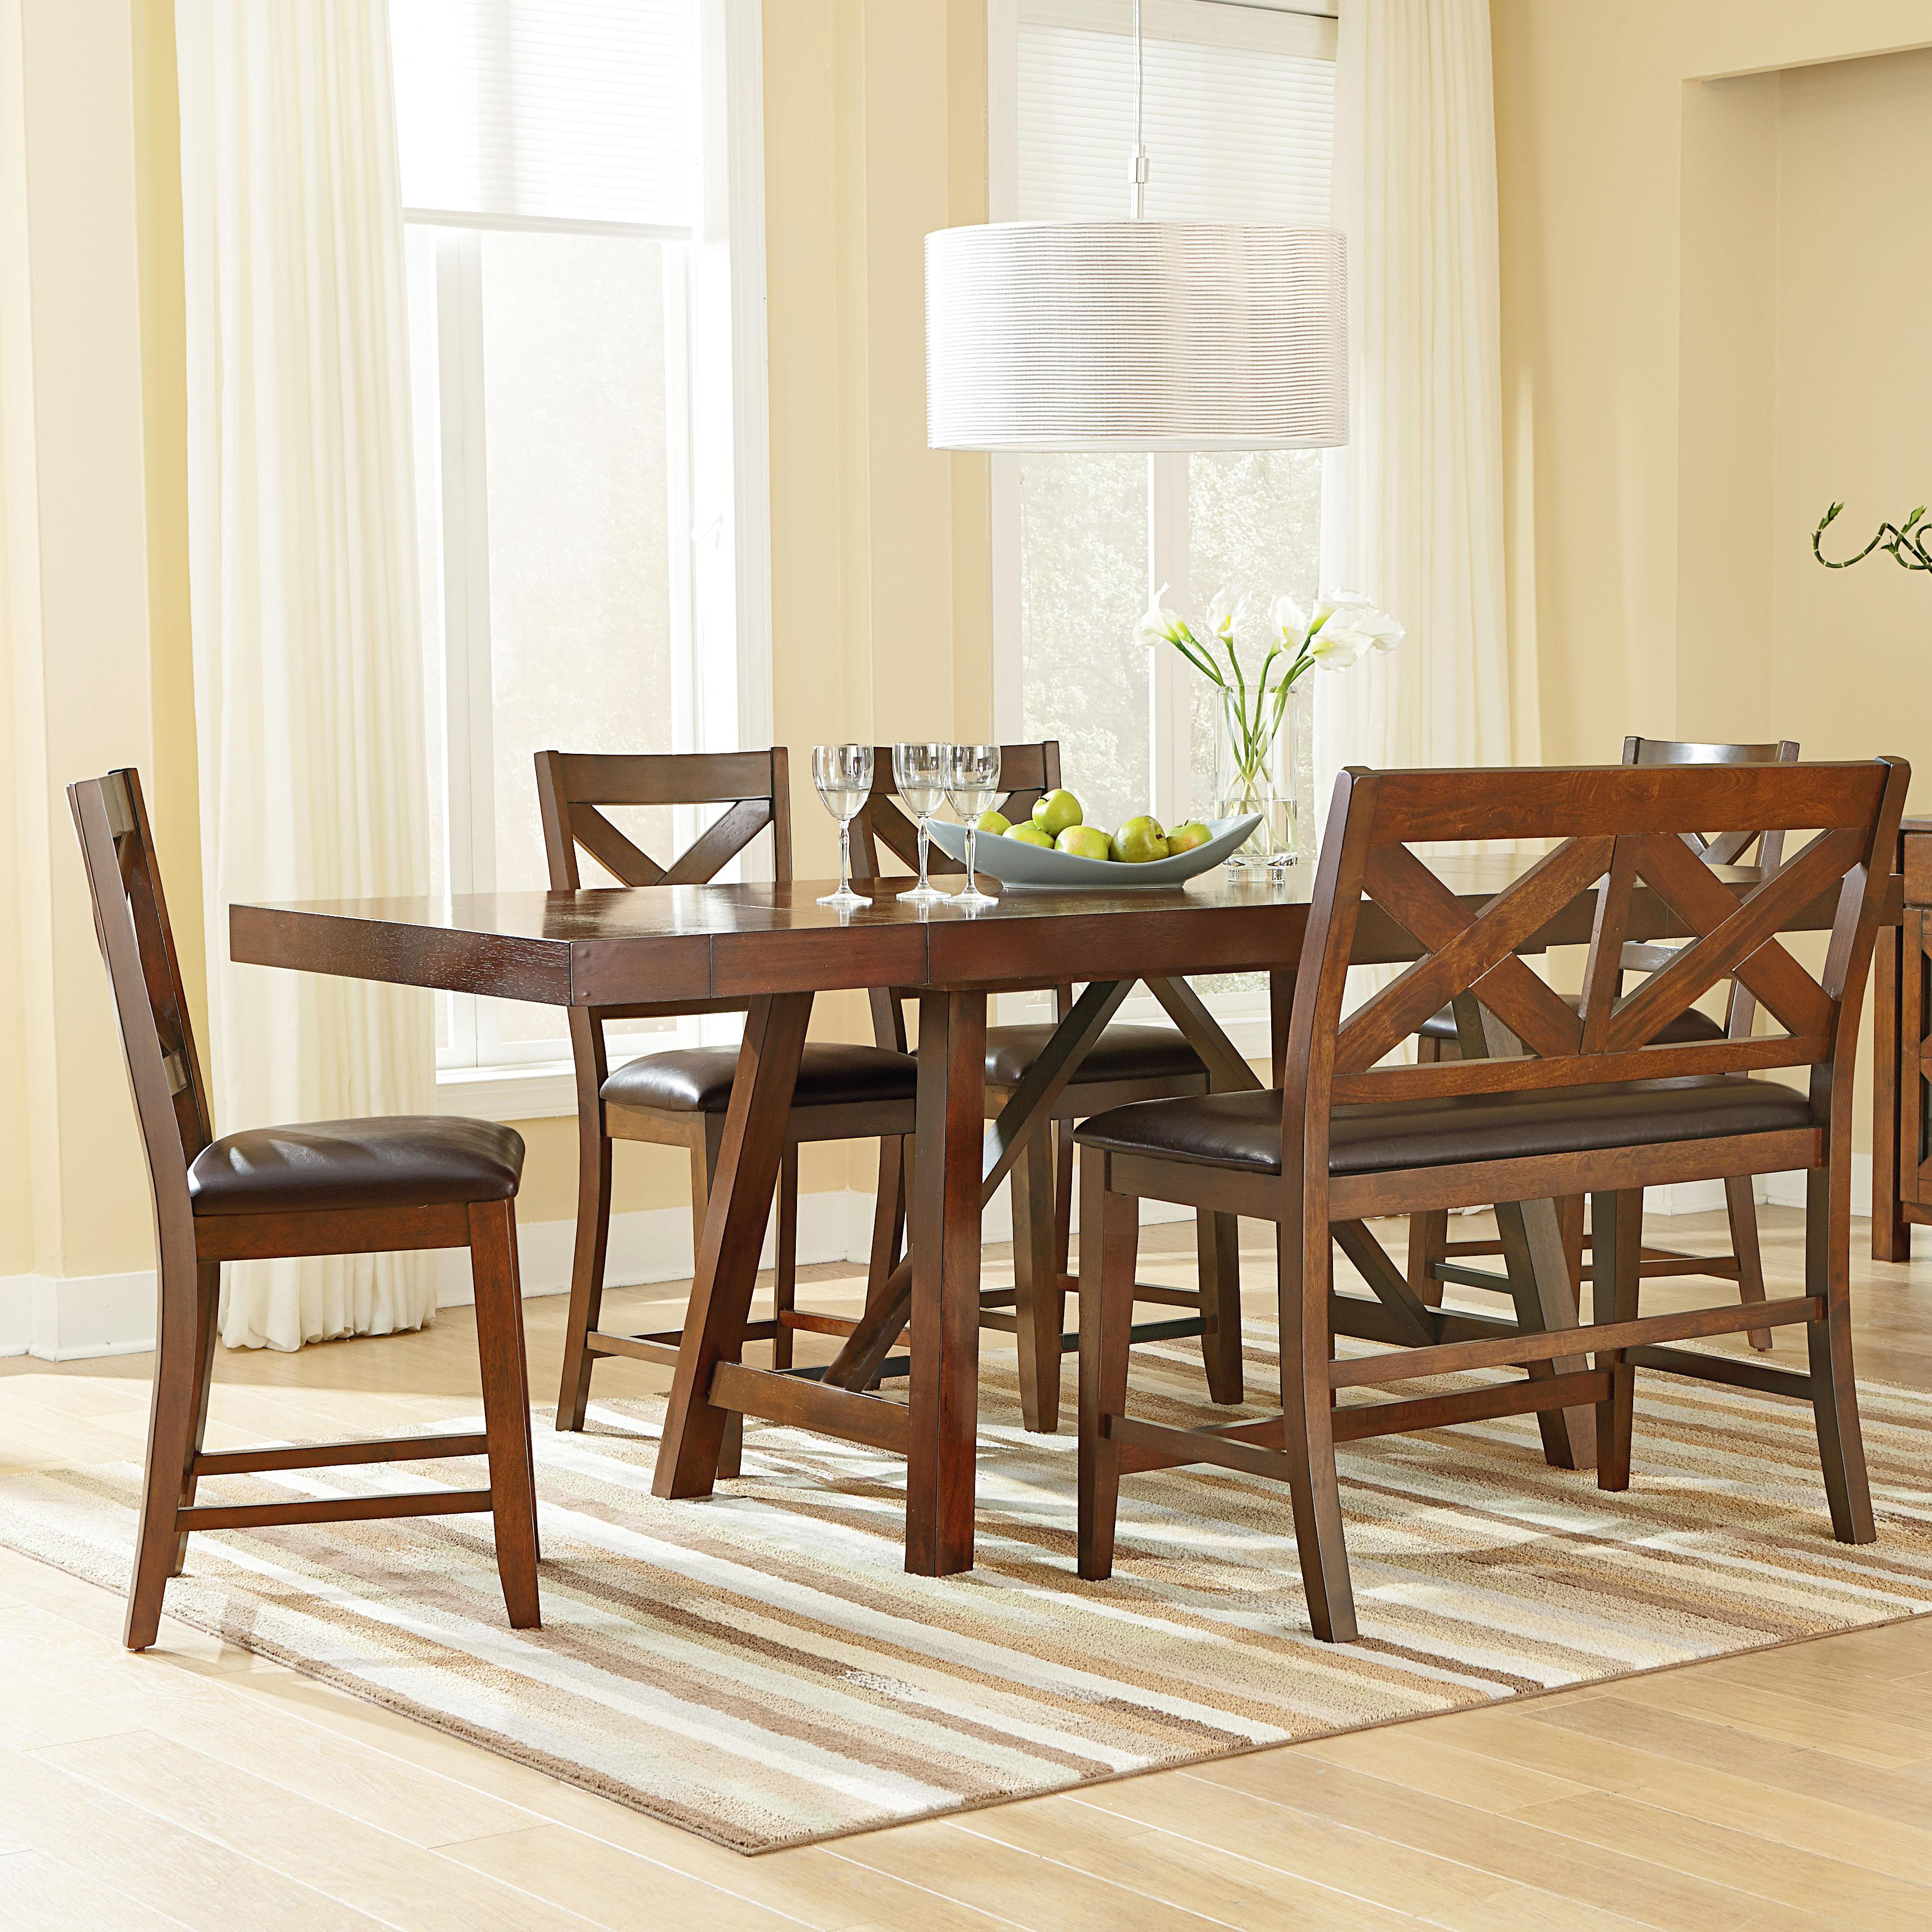 Standard Furniture Omaha Brown Counter Height Table Set - Item Number: 16196+4x16194+16199